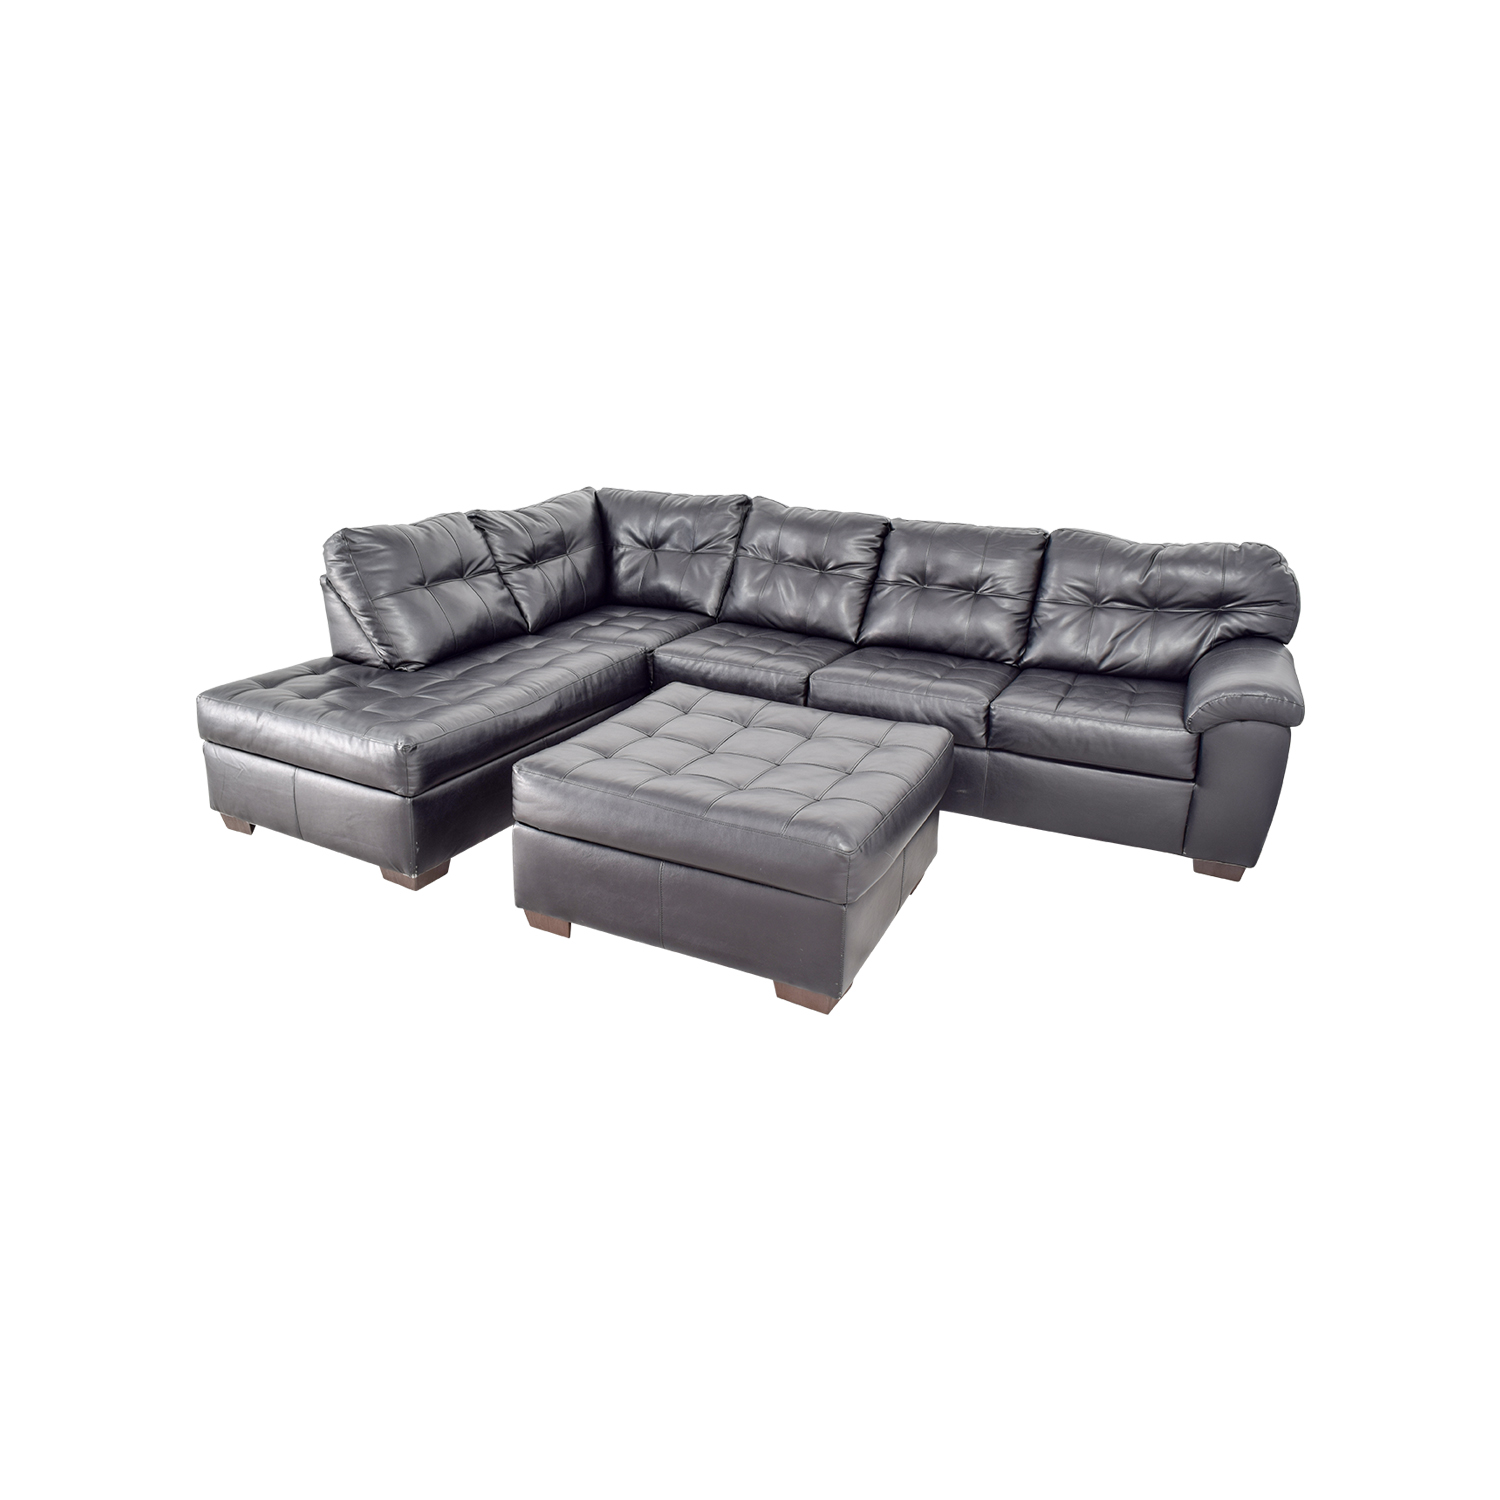 48% OFF Black Leather Tufted Sectional Sofa and Ottoman Sofas